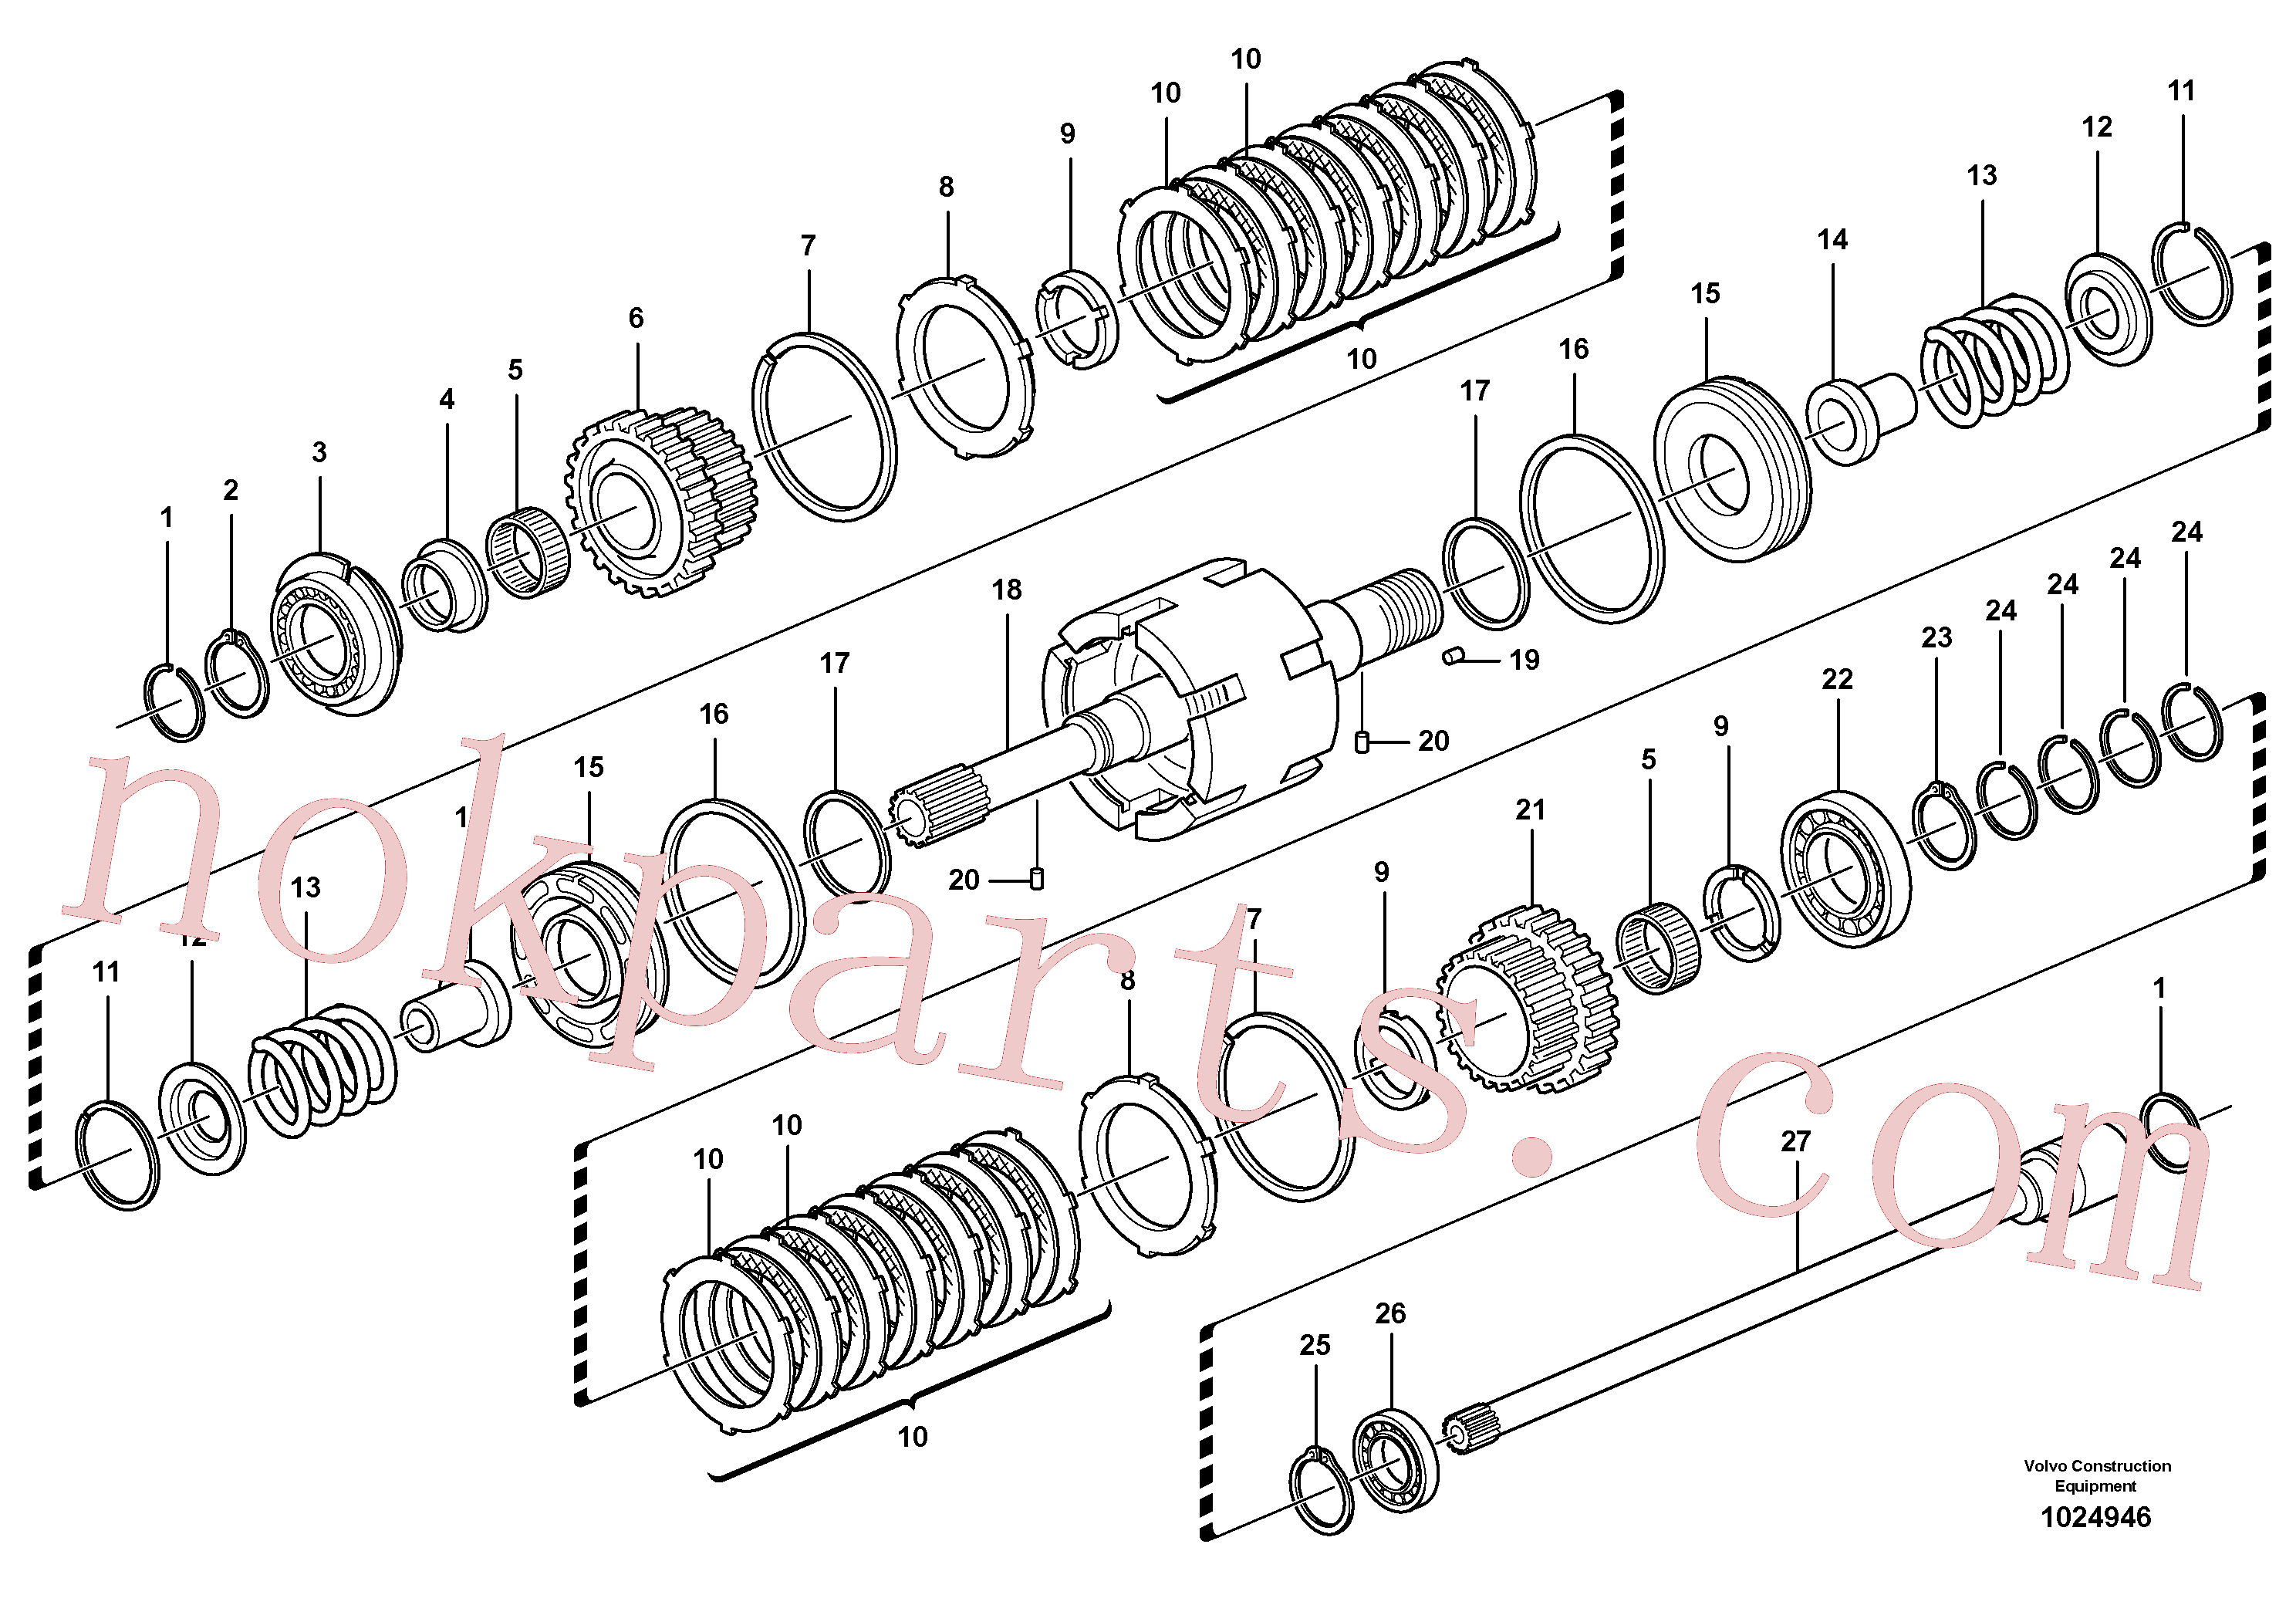 VOE11712469 for Volvo Clutch shaft forward/reverse(1024946 assembly)